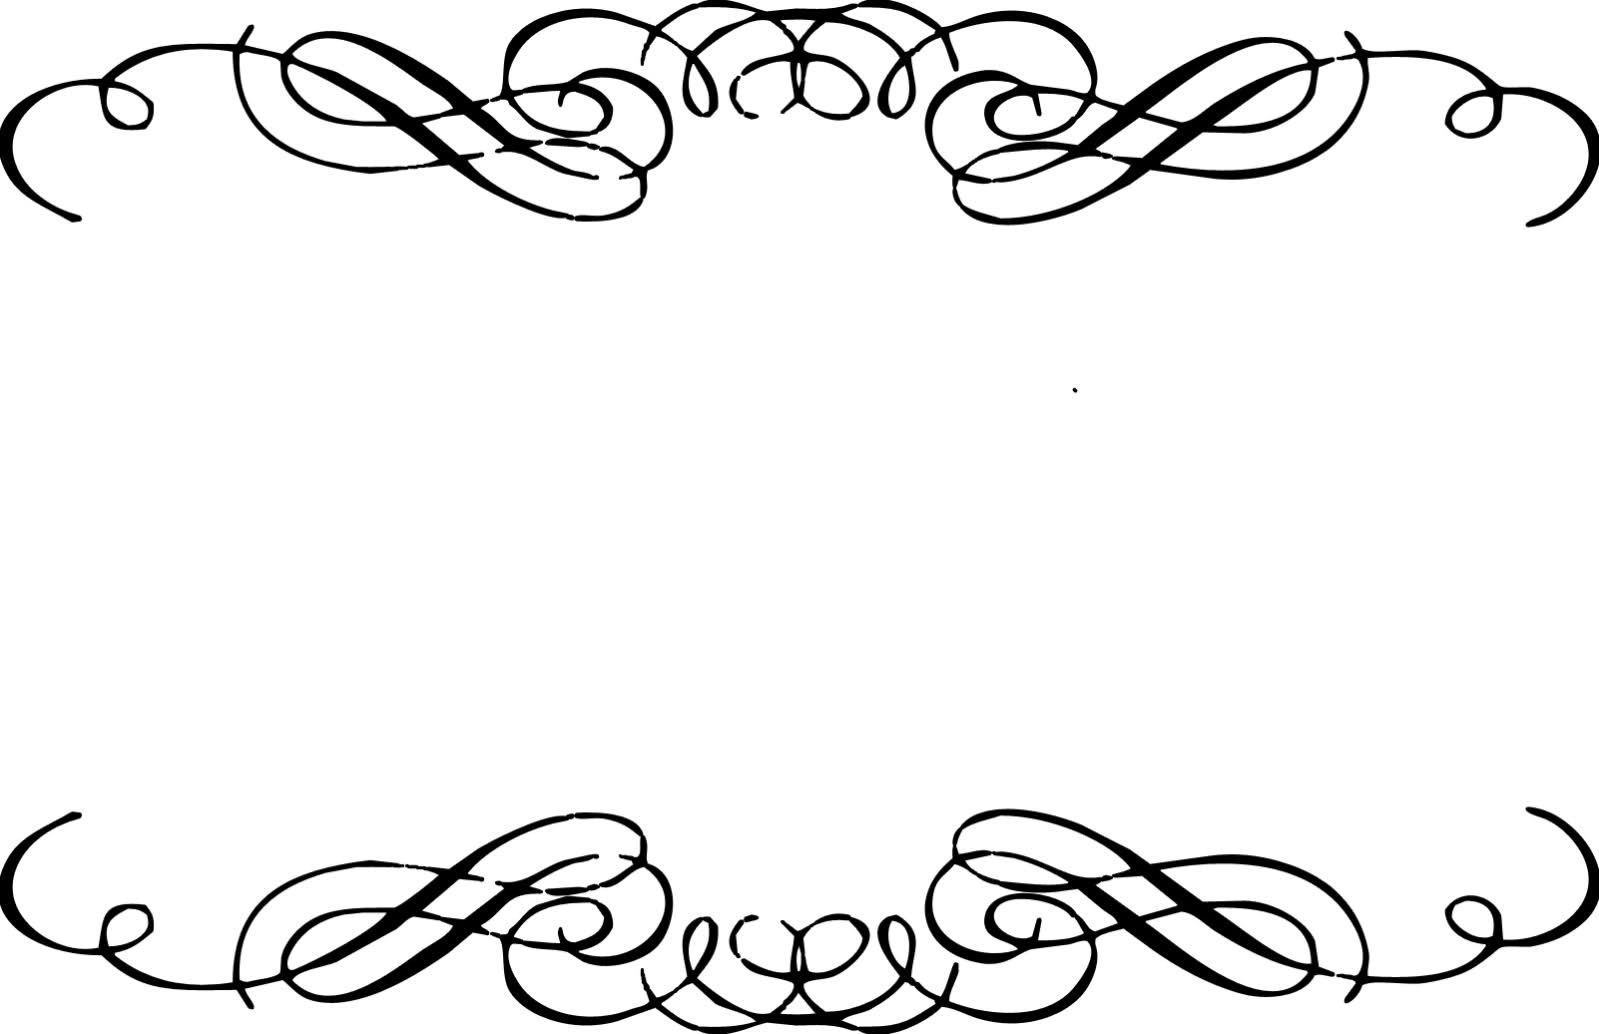 Floral Scroll Frame Clip Art Free Download - ClipArt Best